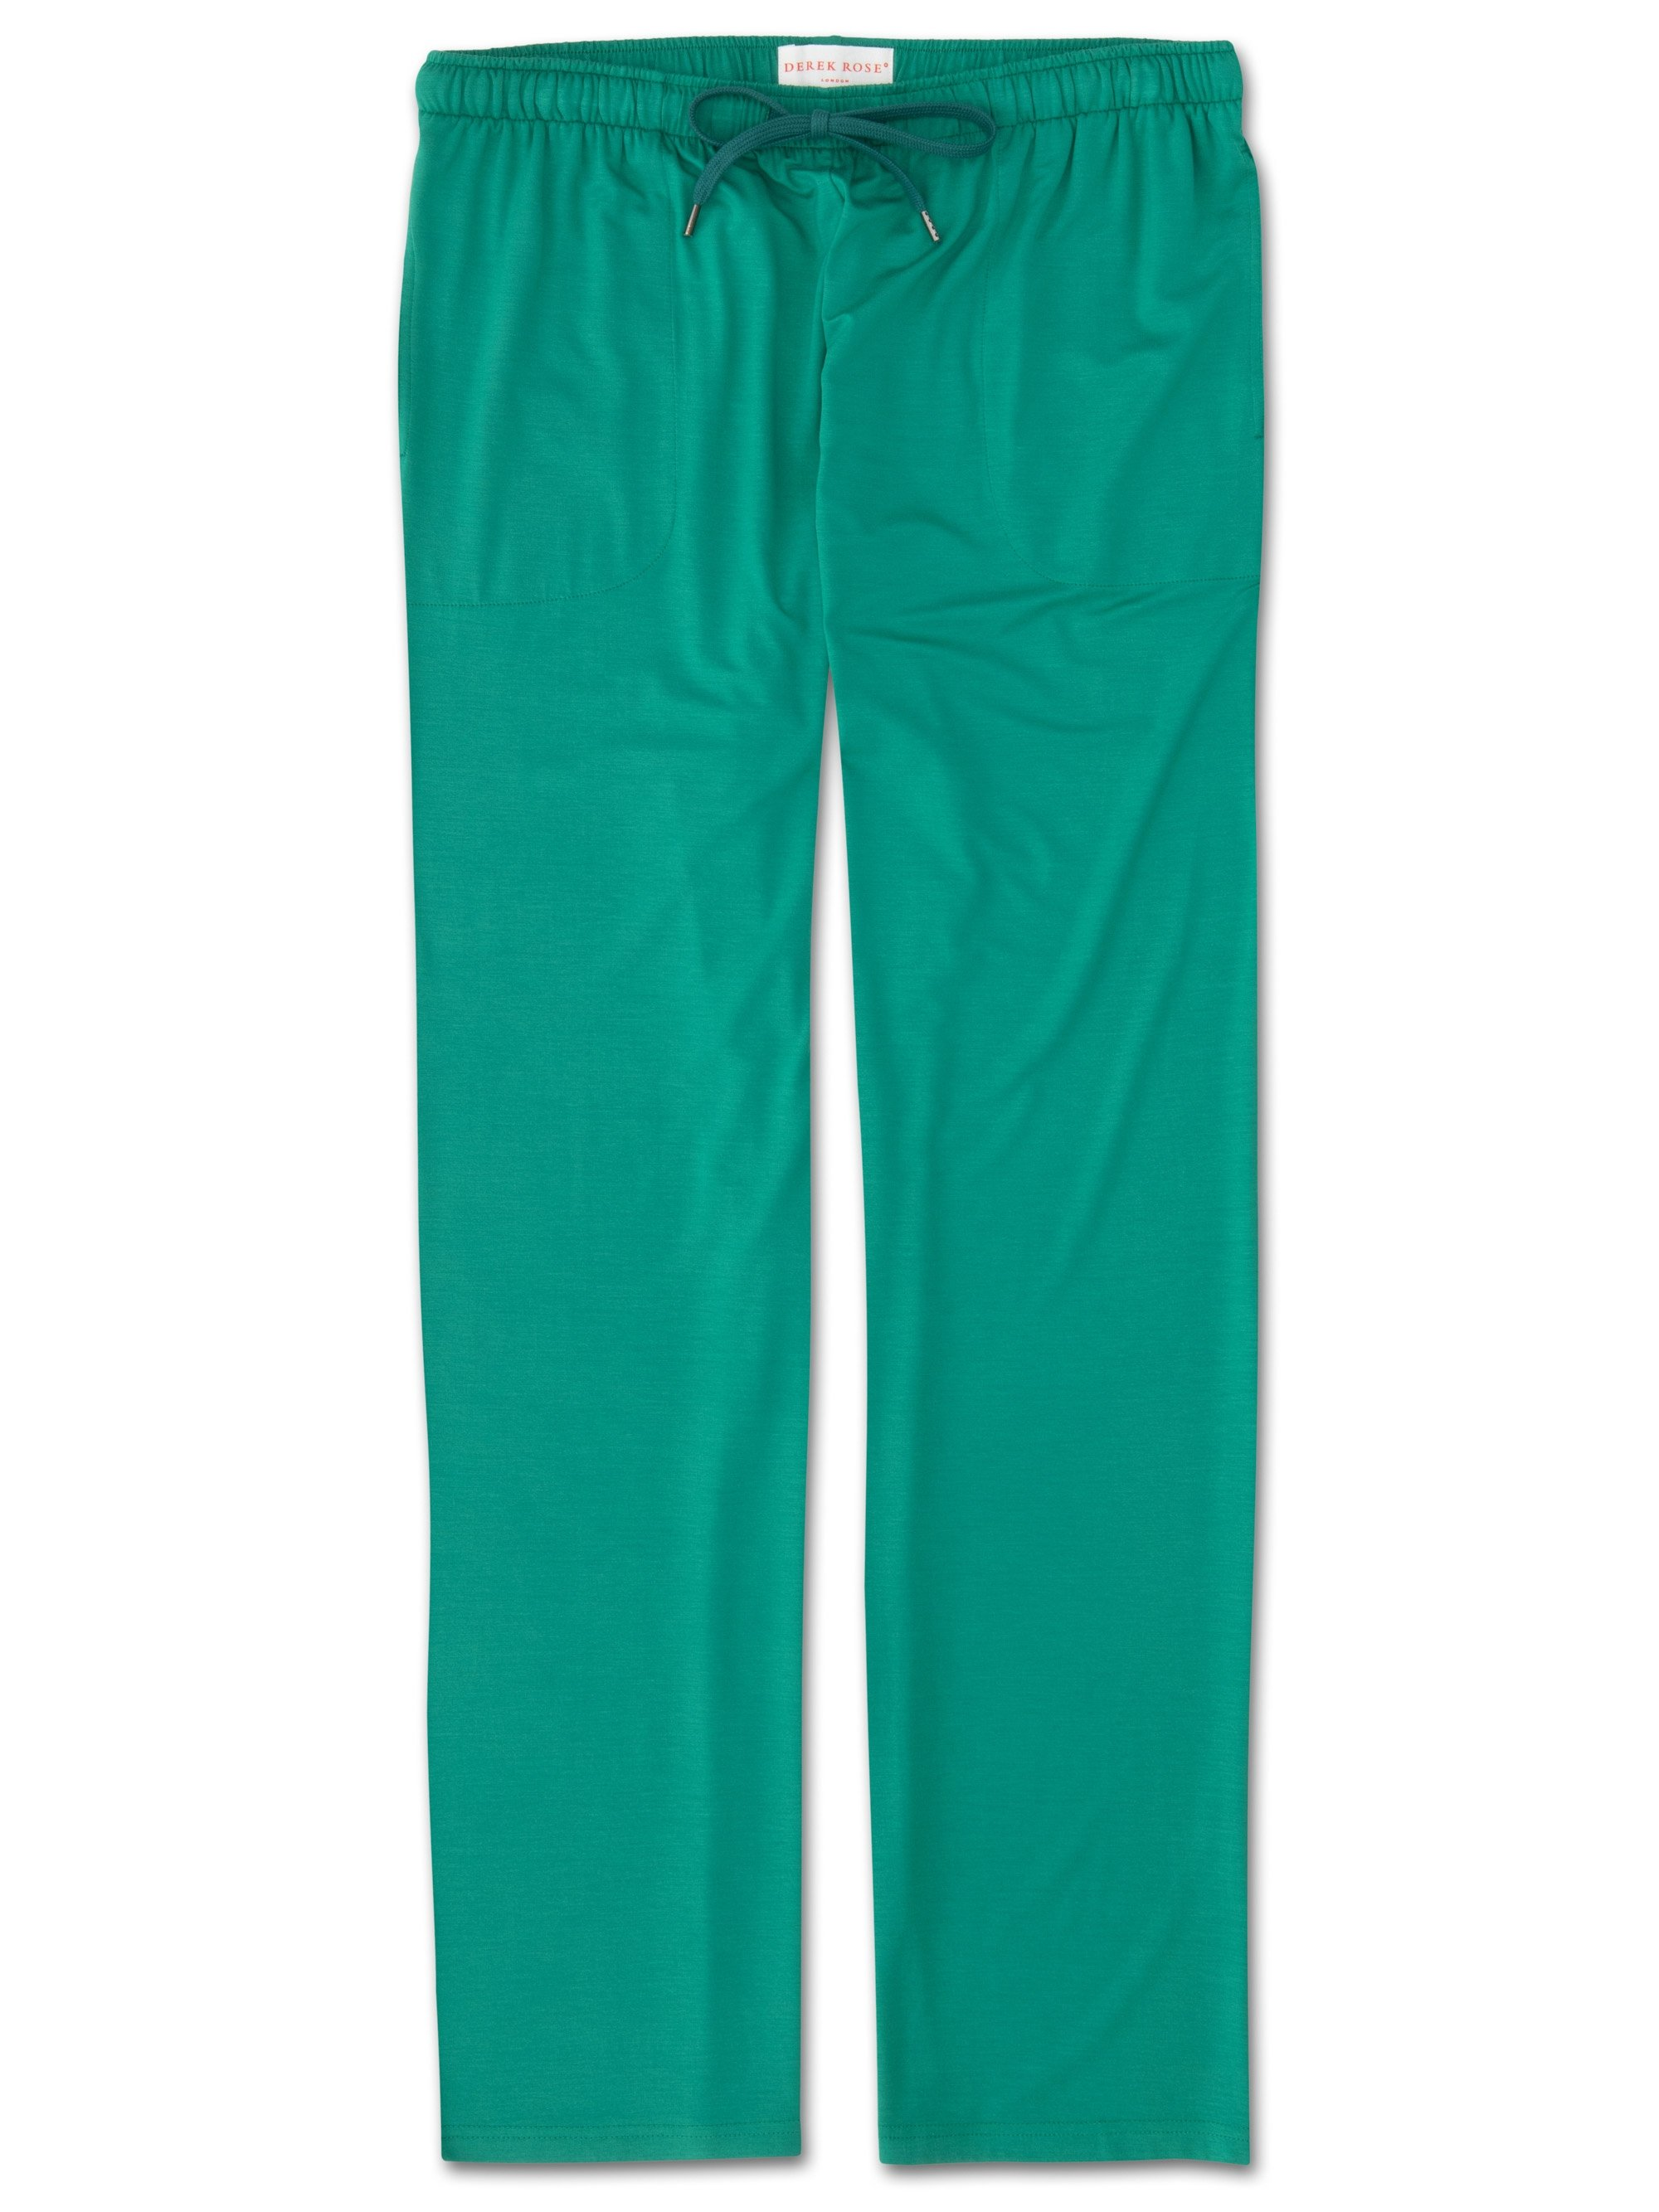 Men's Jersey Trousers Basel 6 Micro Modal Stretch Green